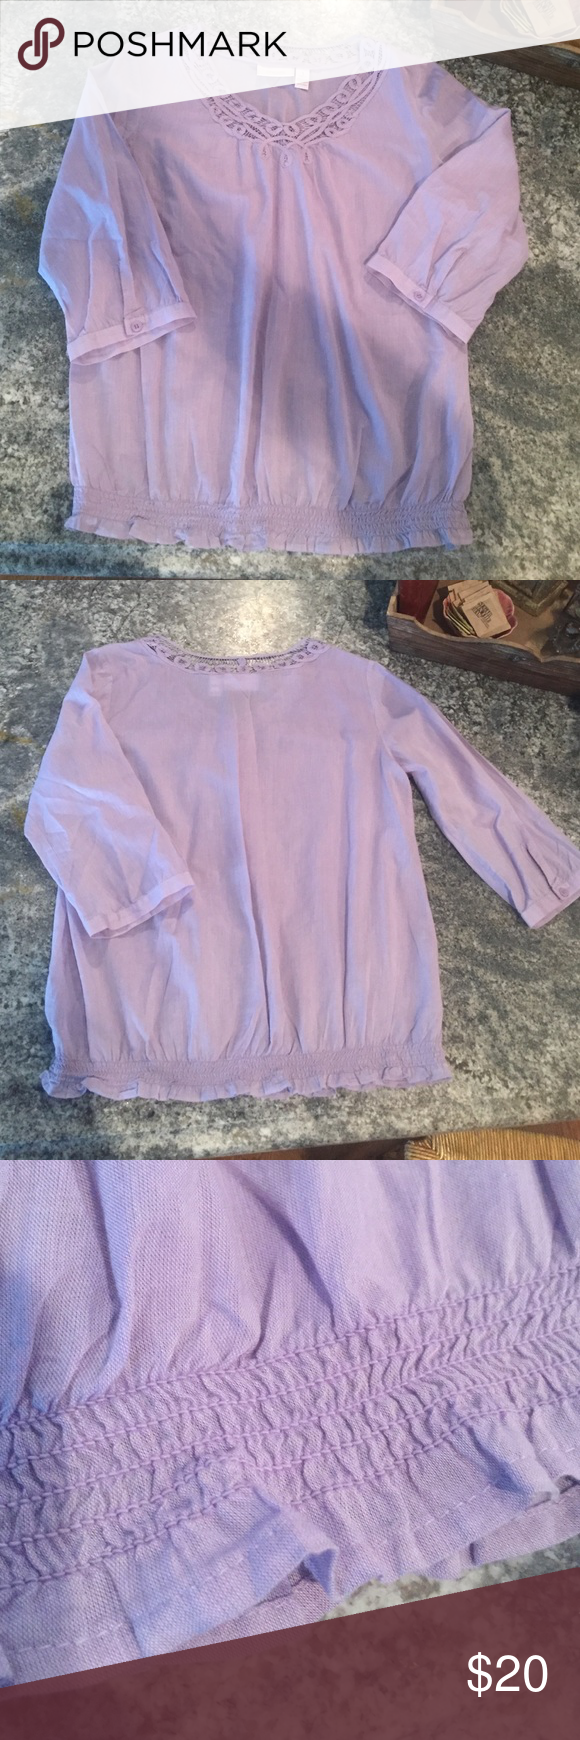 Light purple 100% cotton blouse Light purple 100% cotton, three quarter length sleeved blouse. Scrunched bottom. Chico's size 1, equivalent of a size Medium. Chico's Tops Blouses